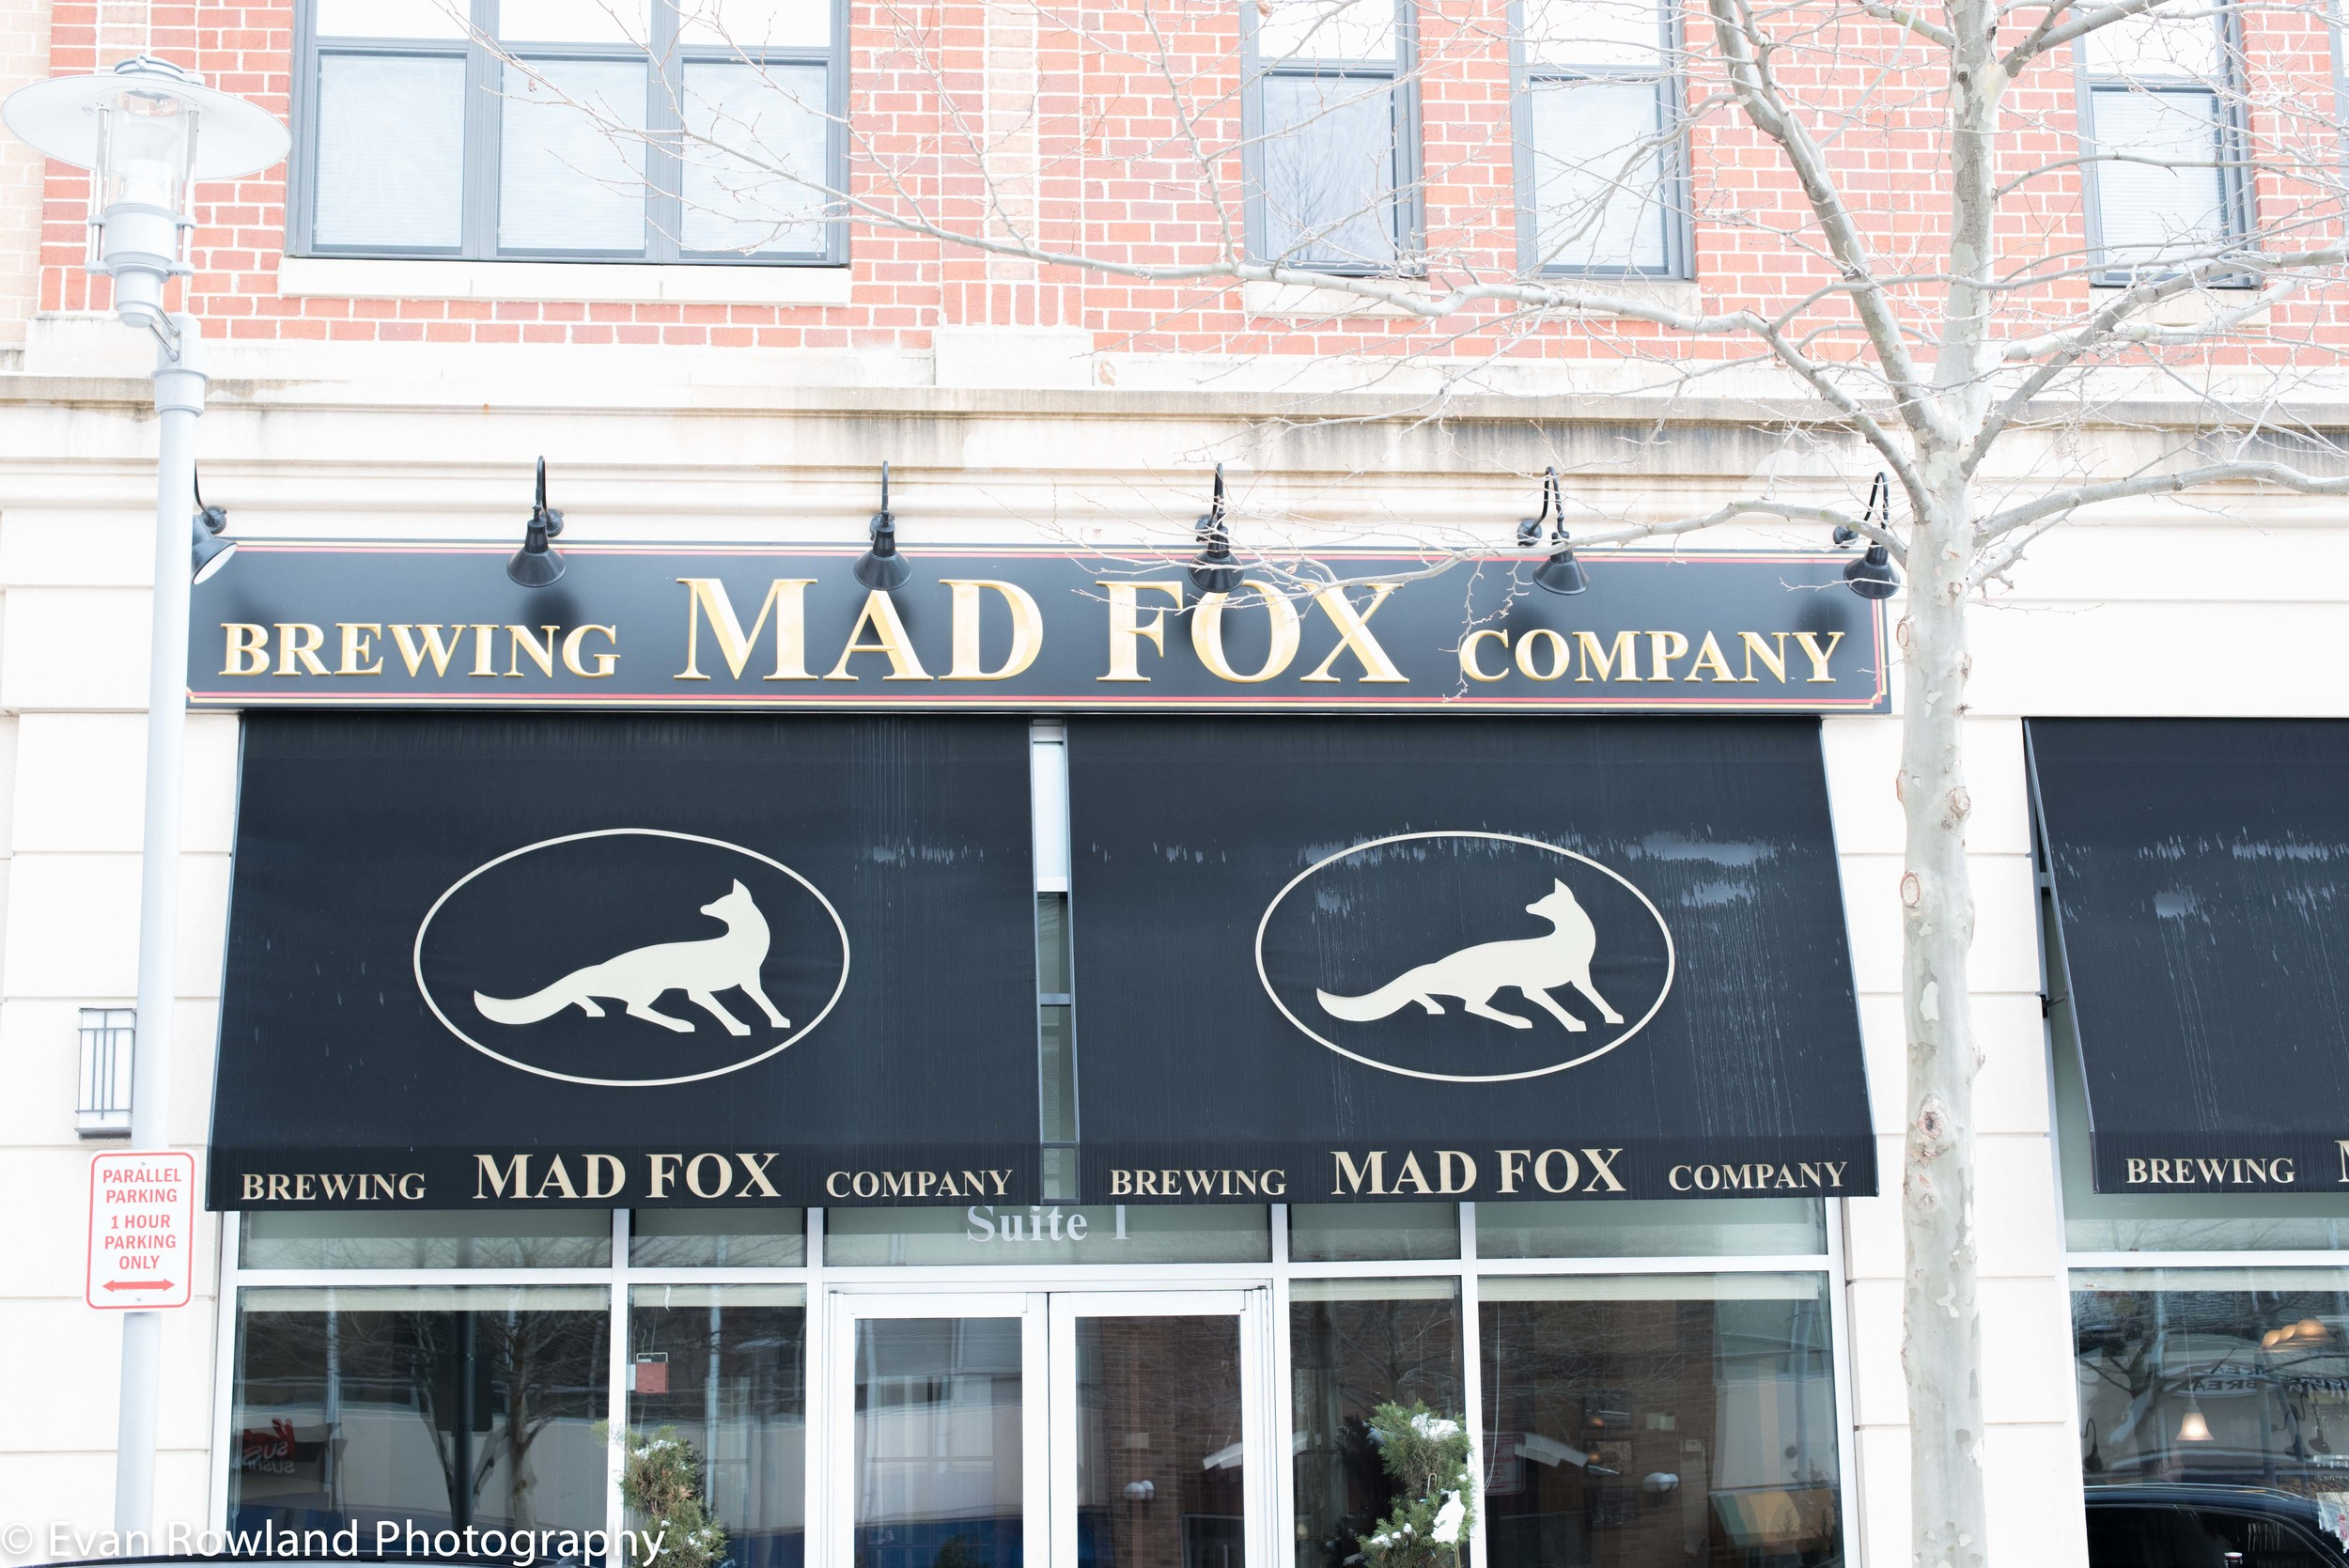 Entry to Mad Fox